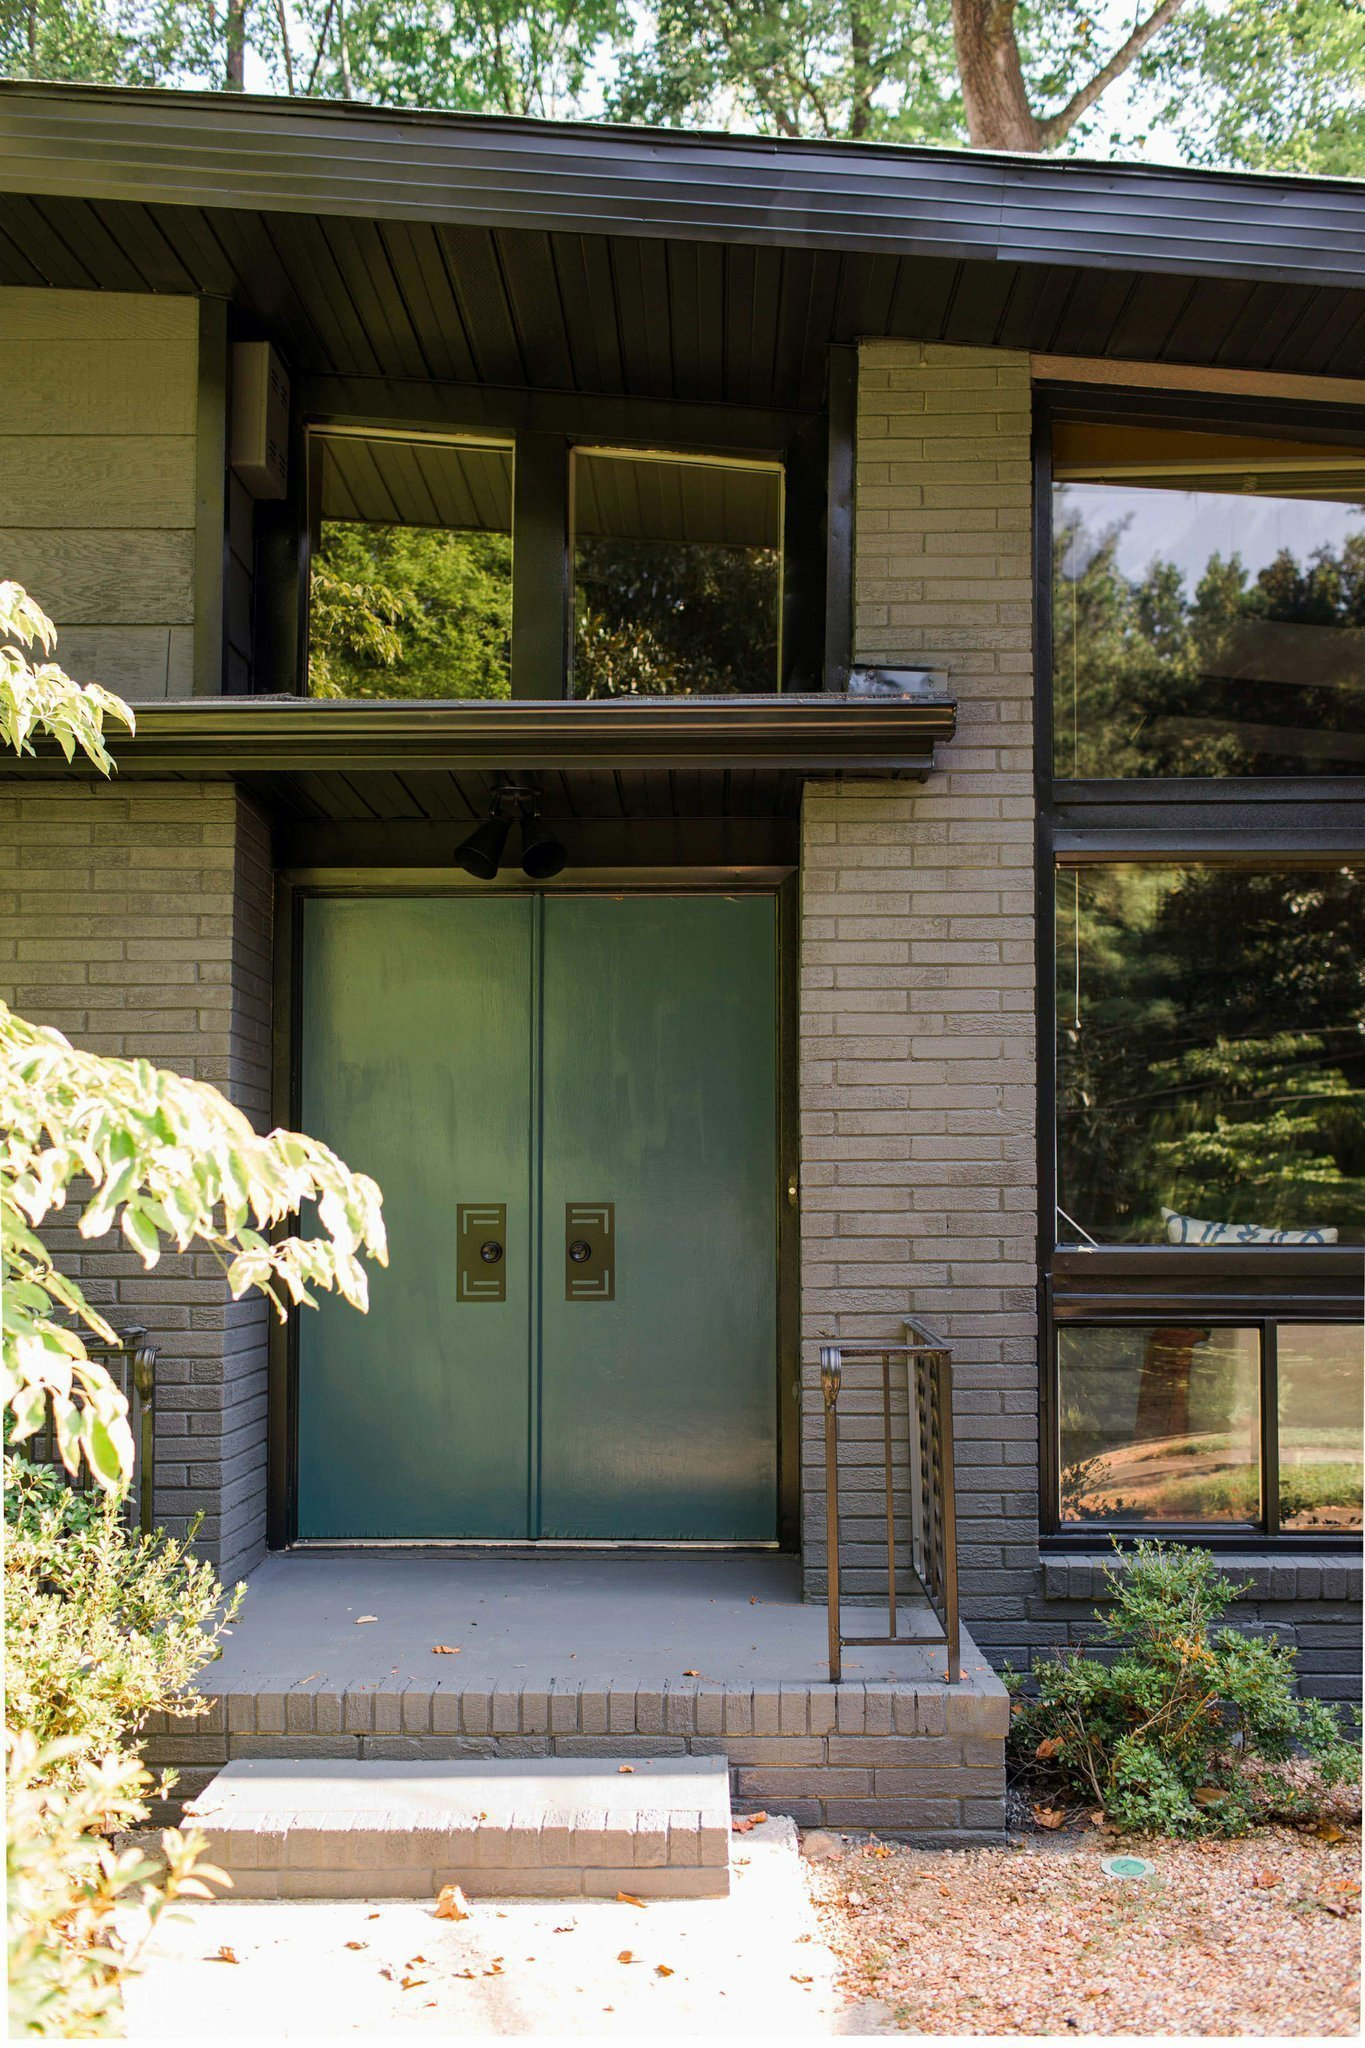 ask a designer: making a home's entrance inviting all year - the